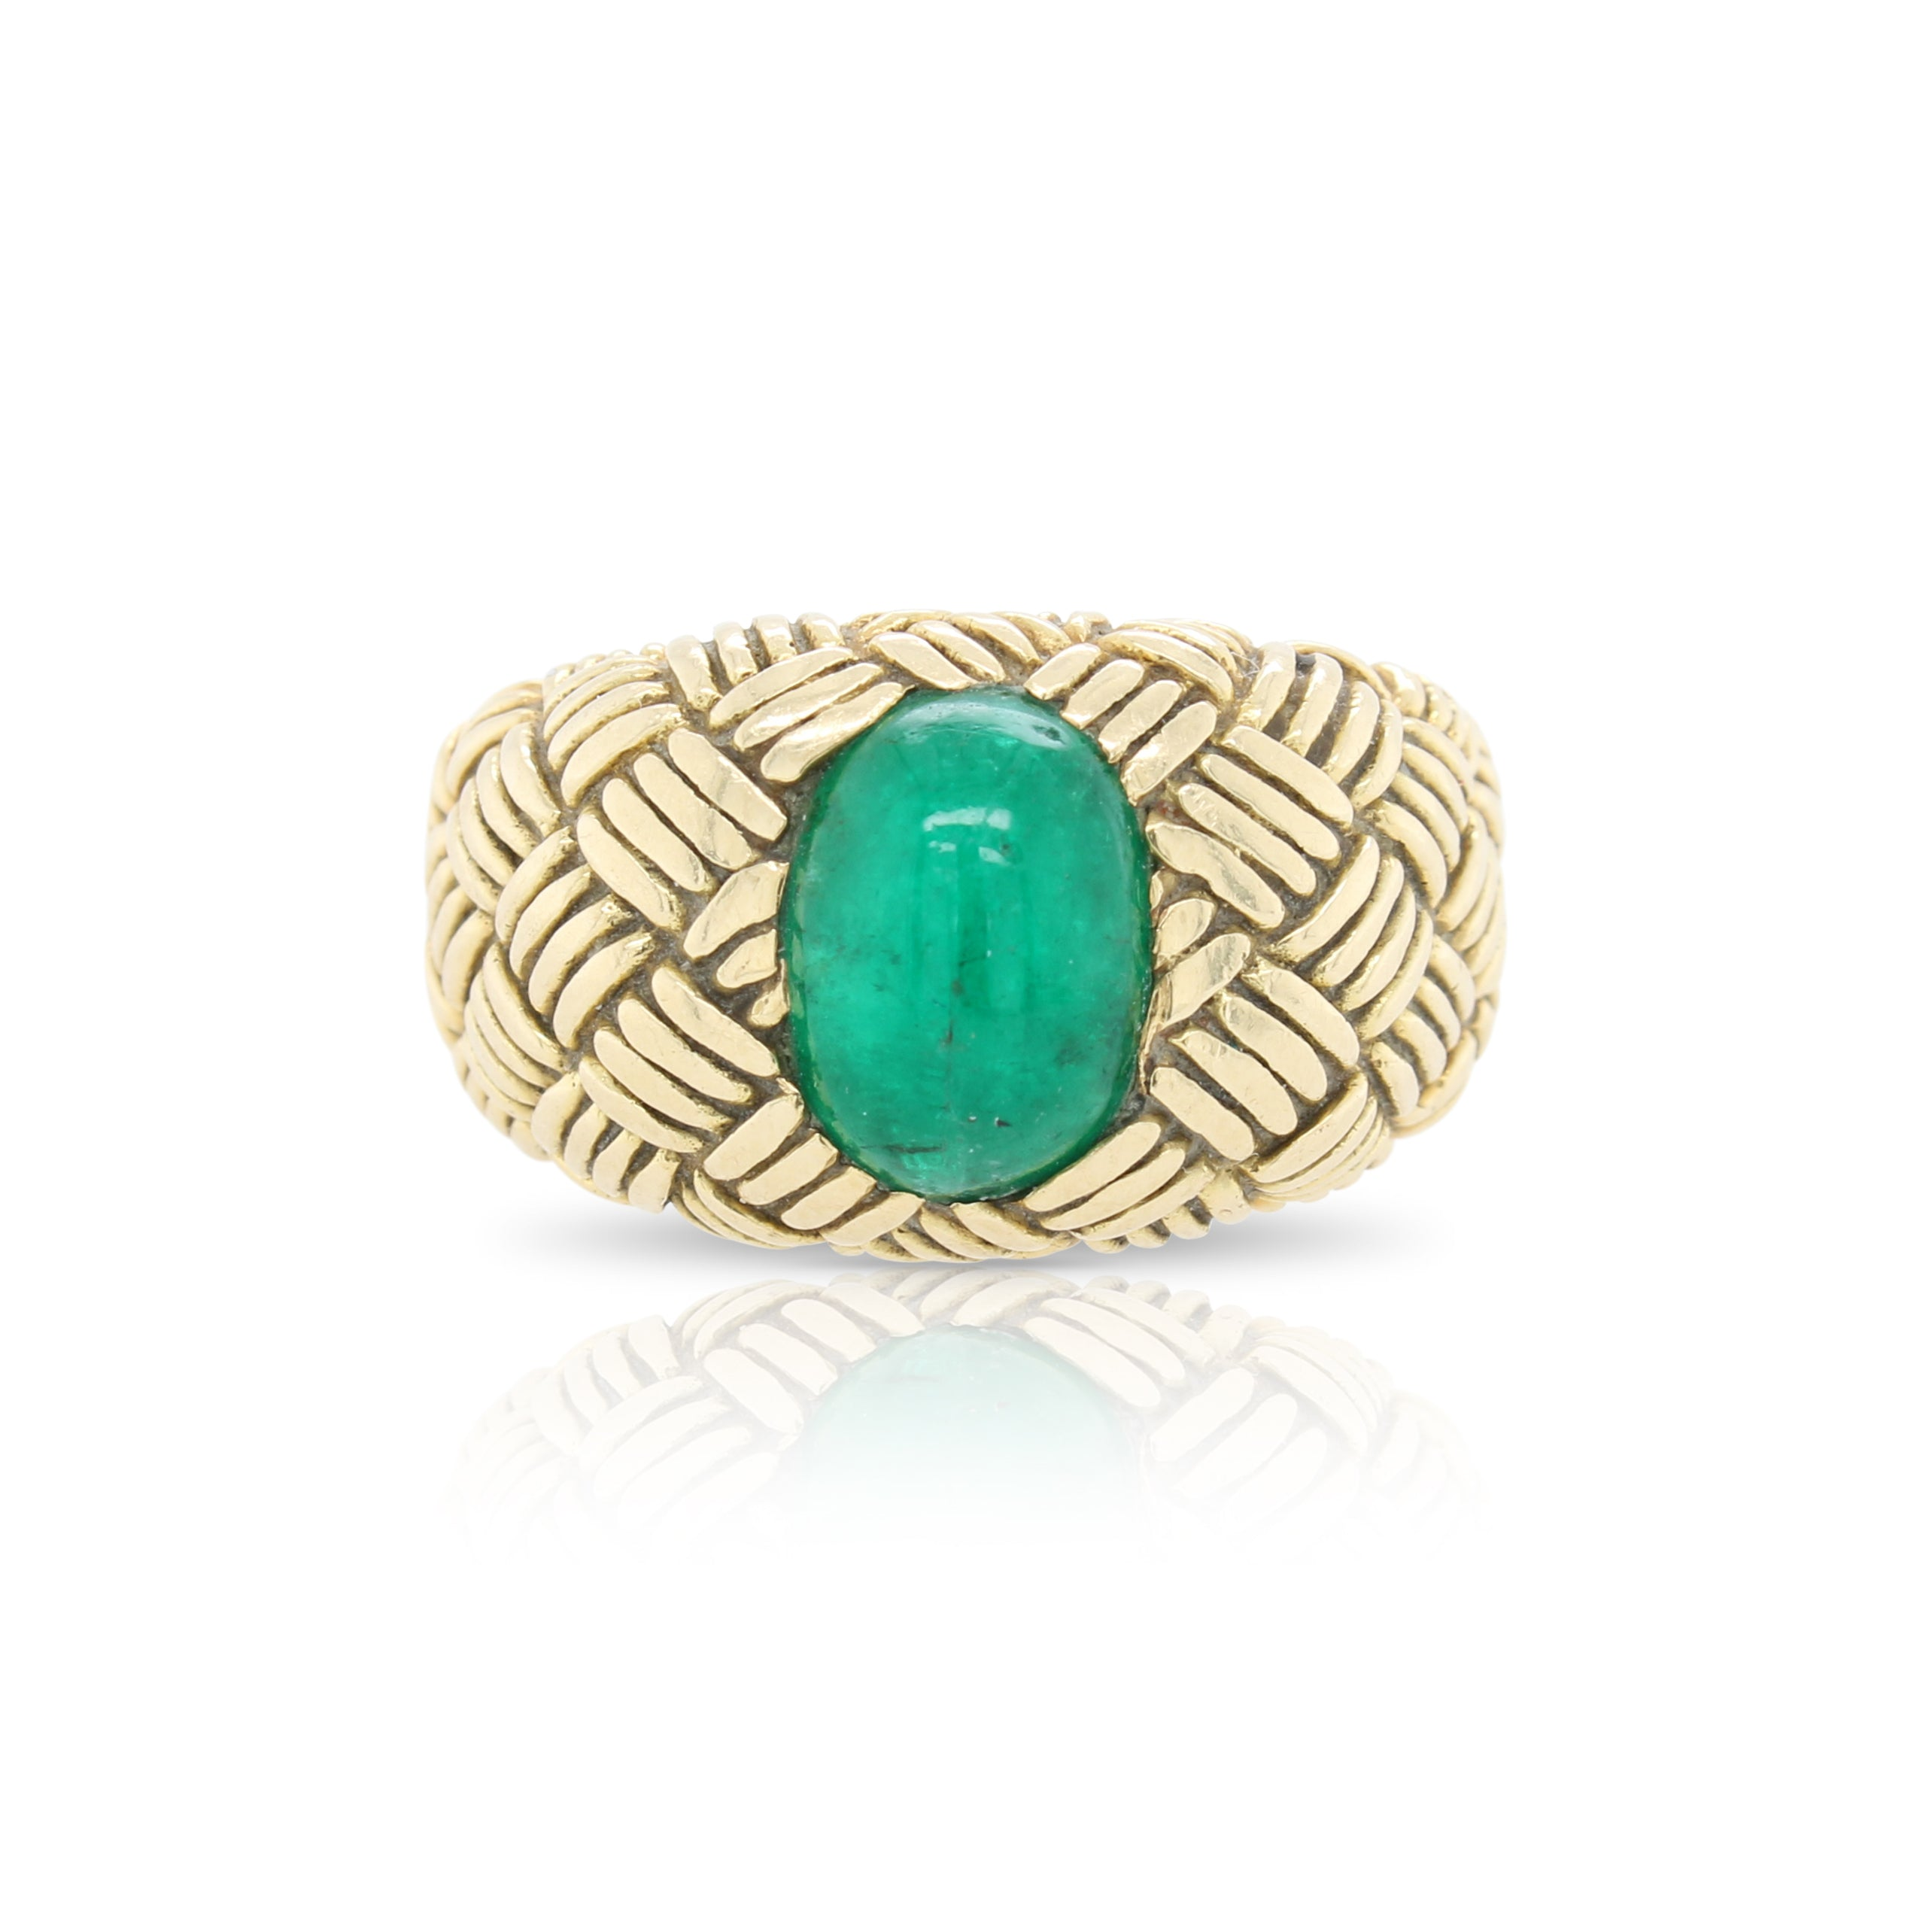 Engraved Emerald Ring